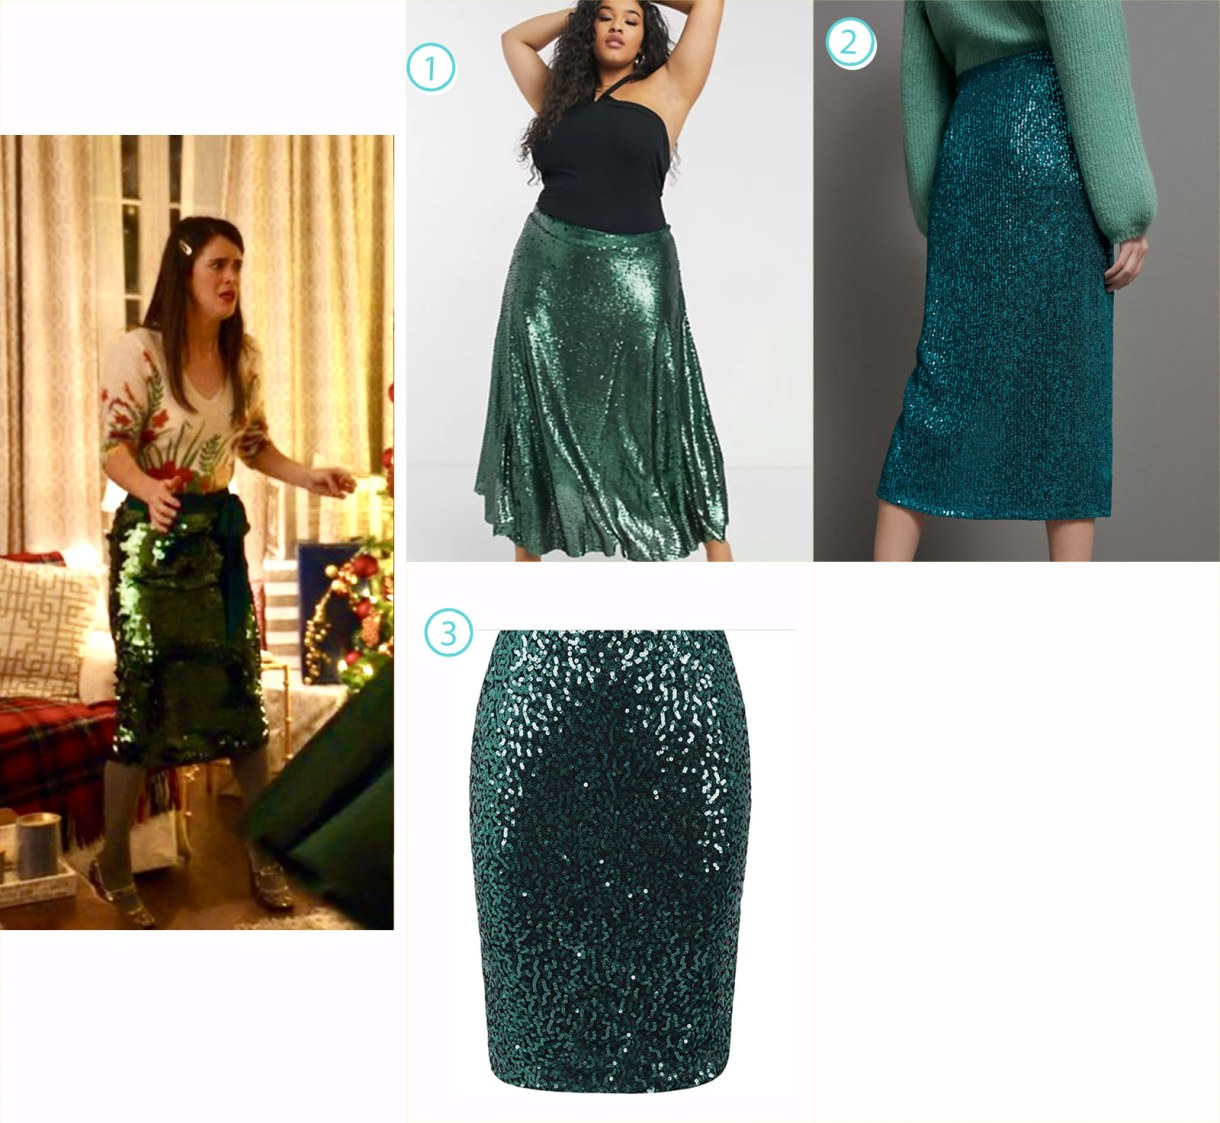 A variety of knee length sparkly green skirts like Jane in Happiest Season's fashion.